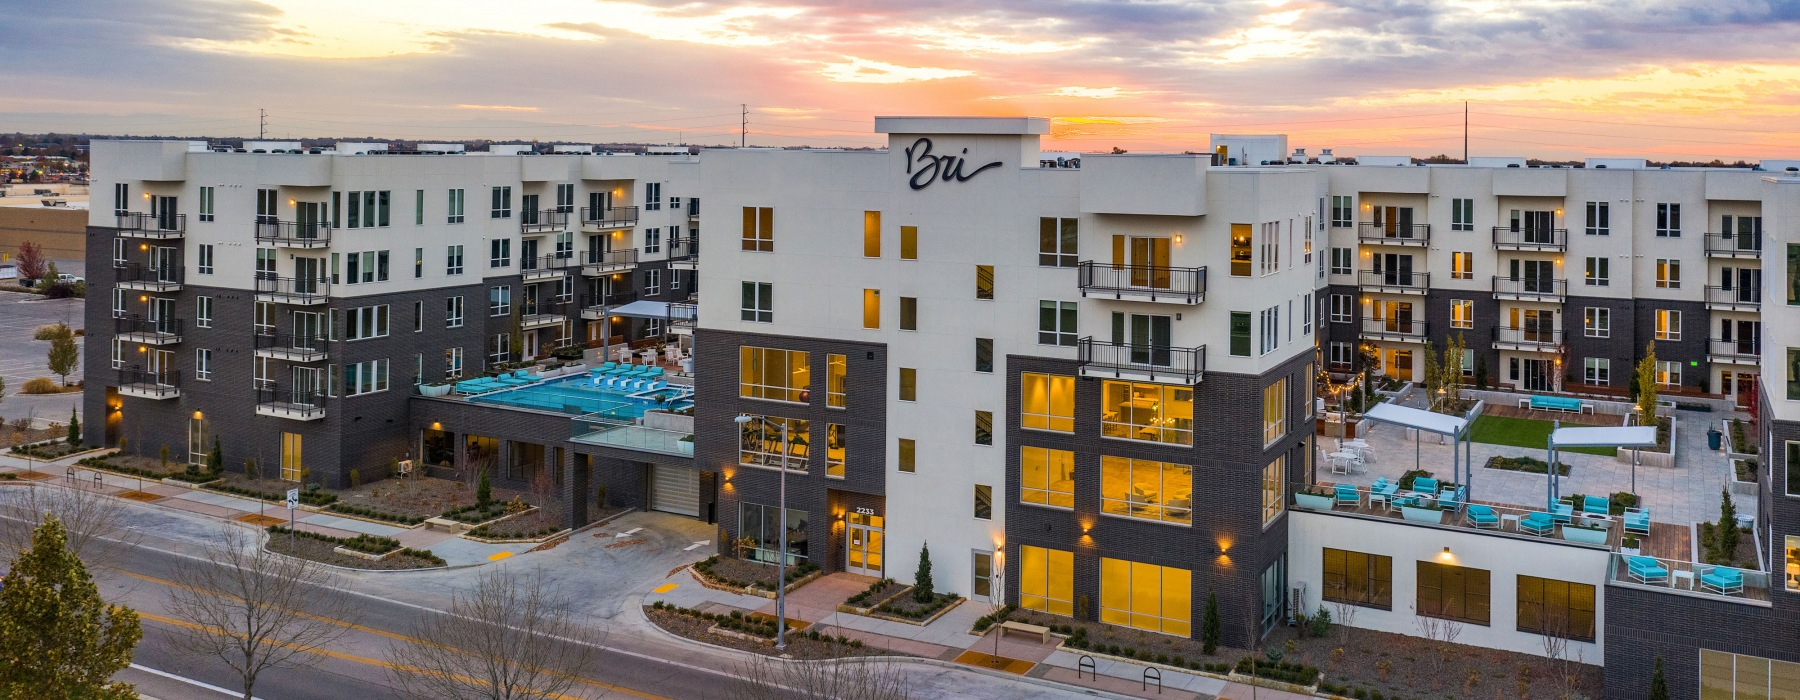 Book Your Tour of Bri at The Village Today!